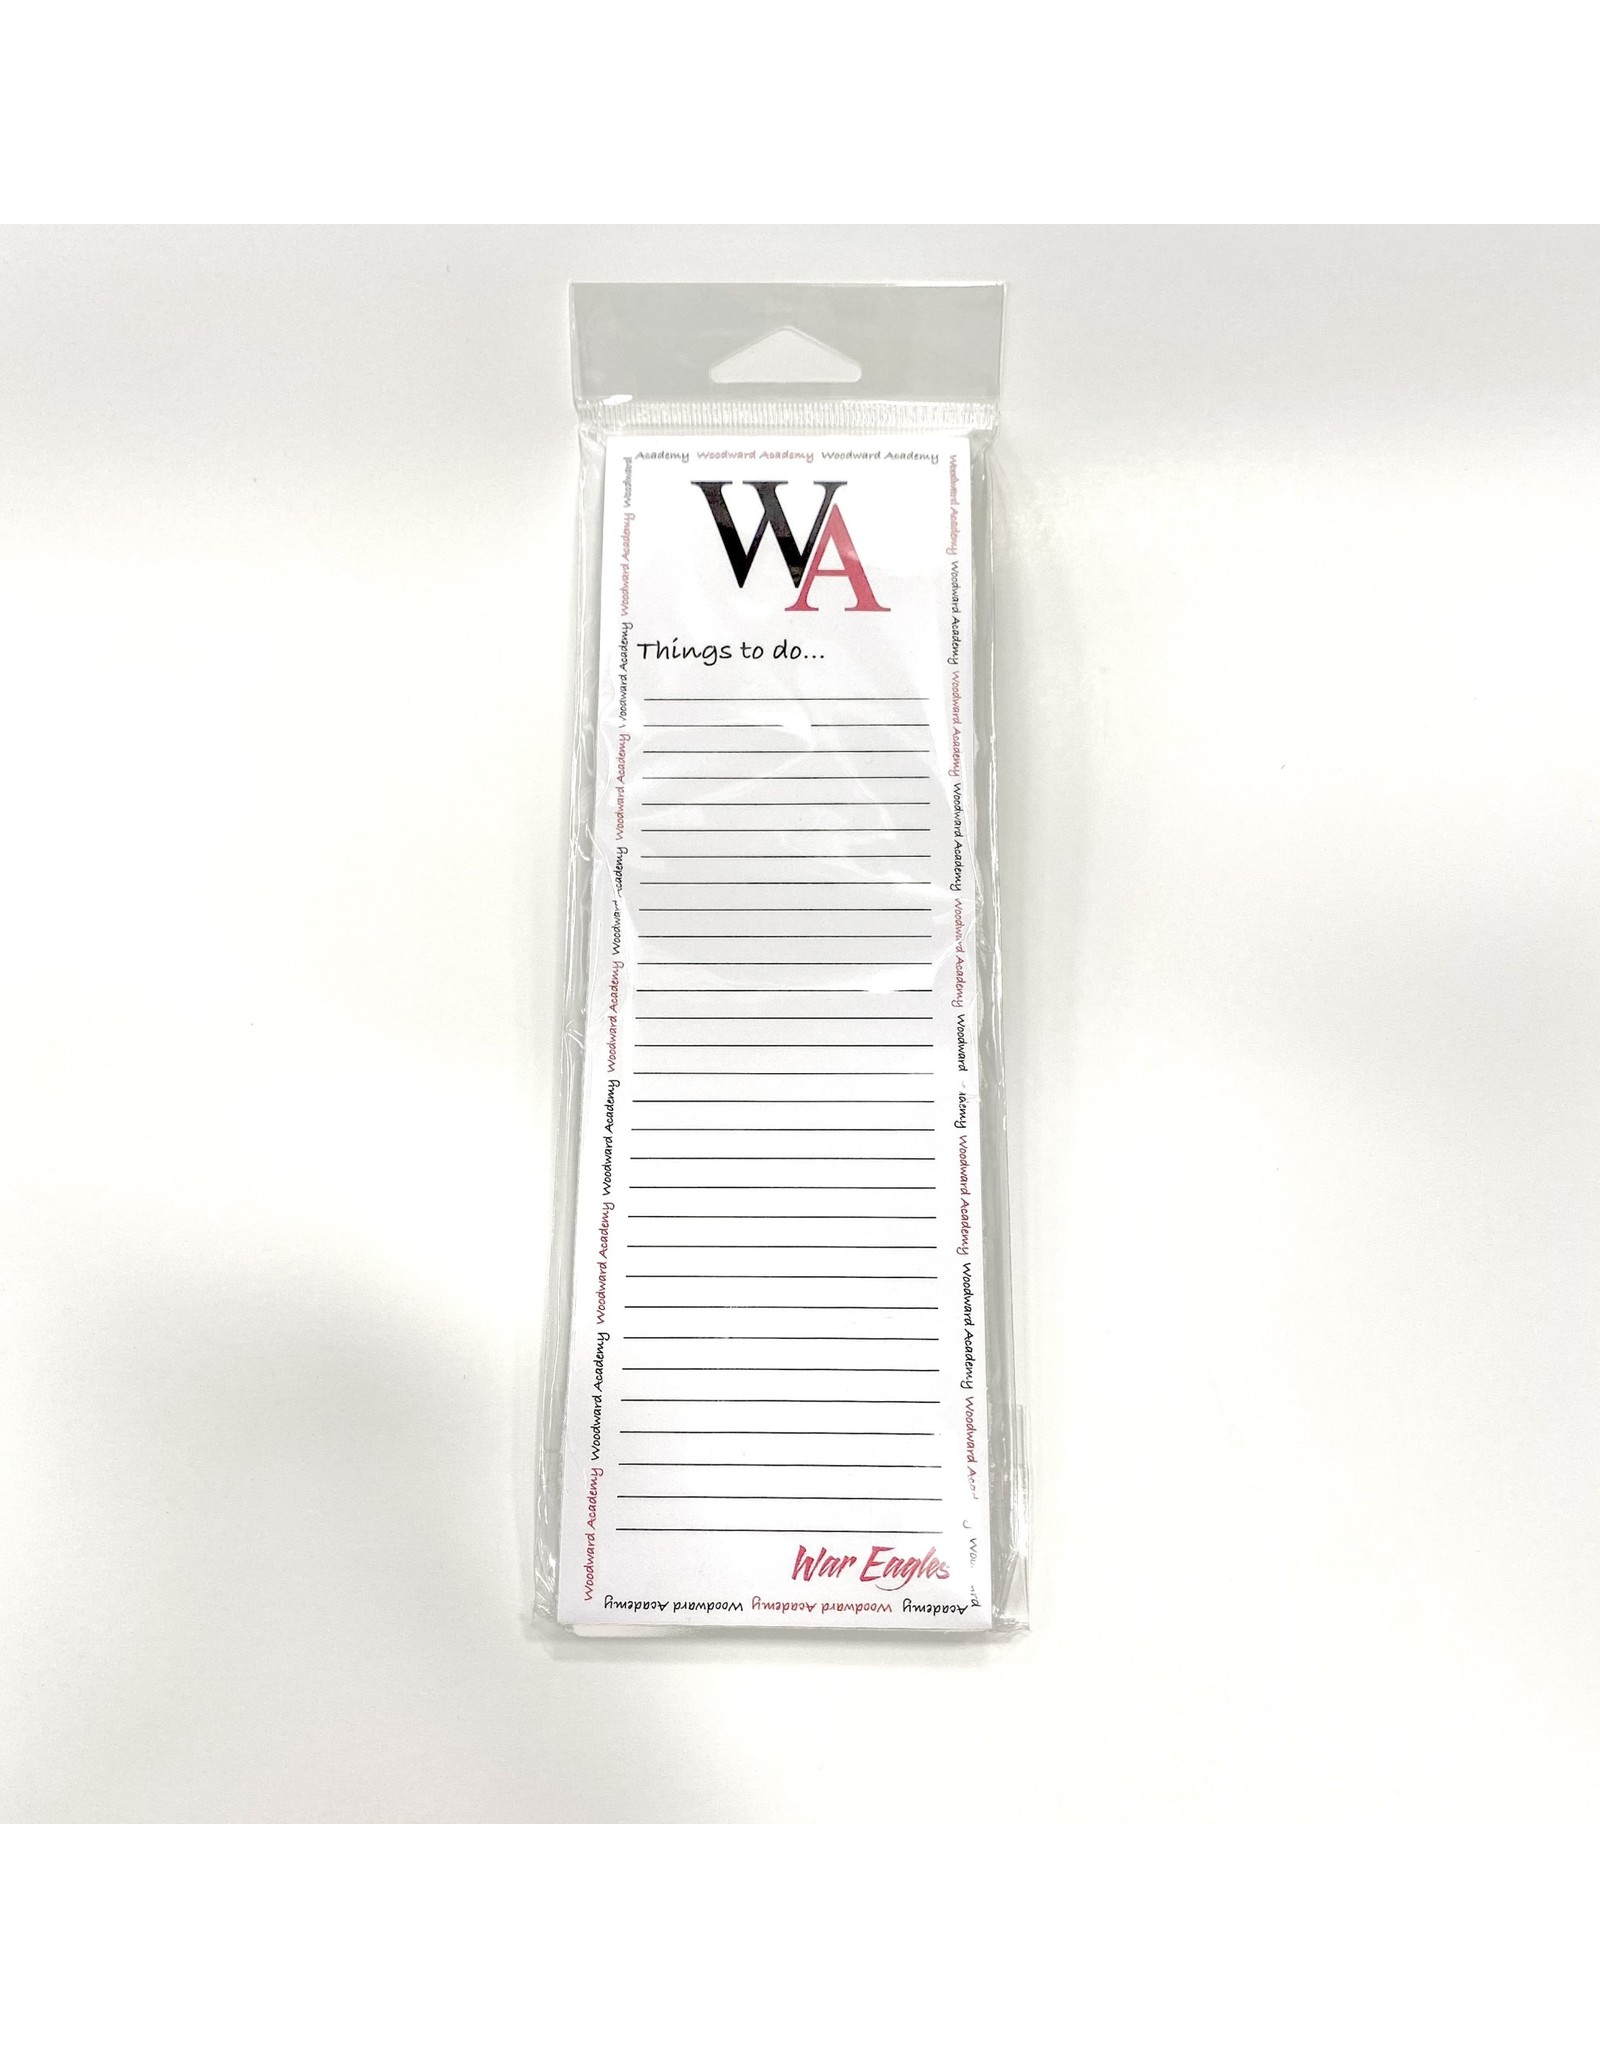 STATIONERY THINGS TO DO MEMO PAD